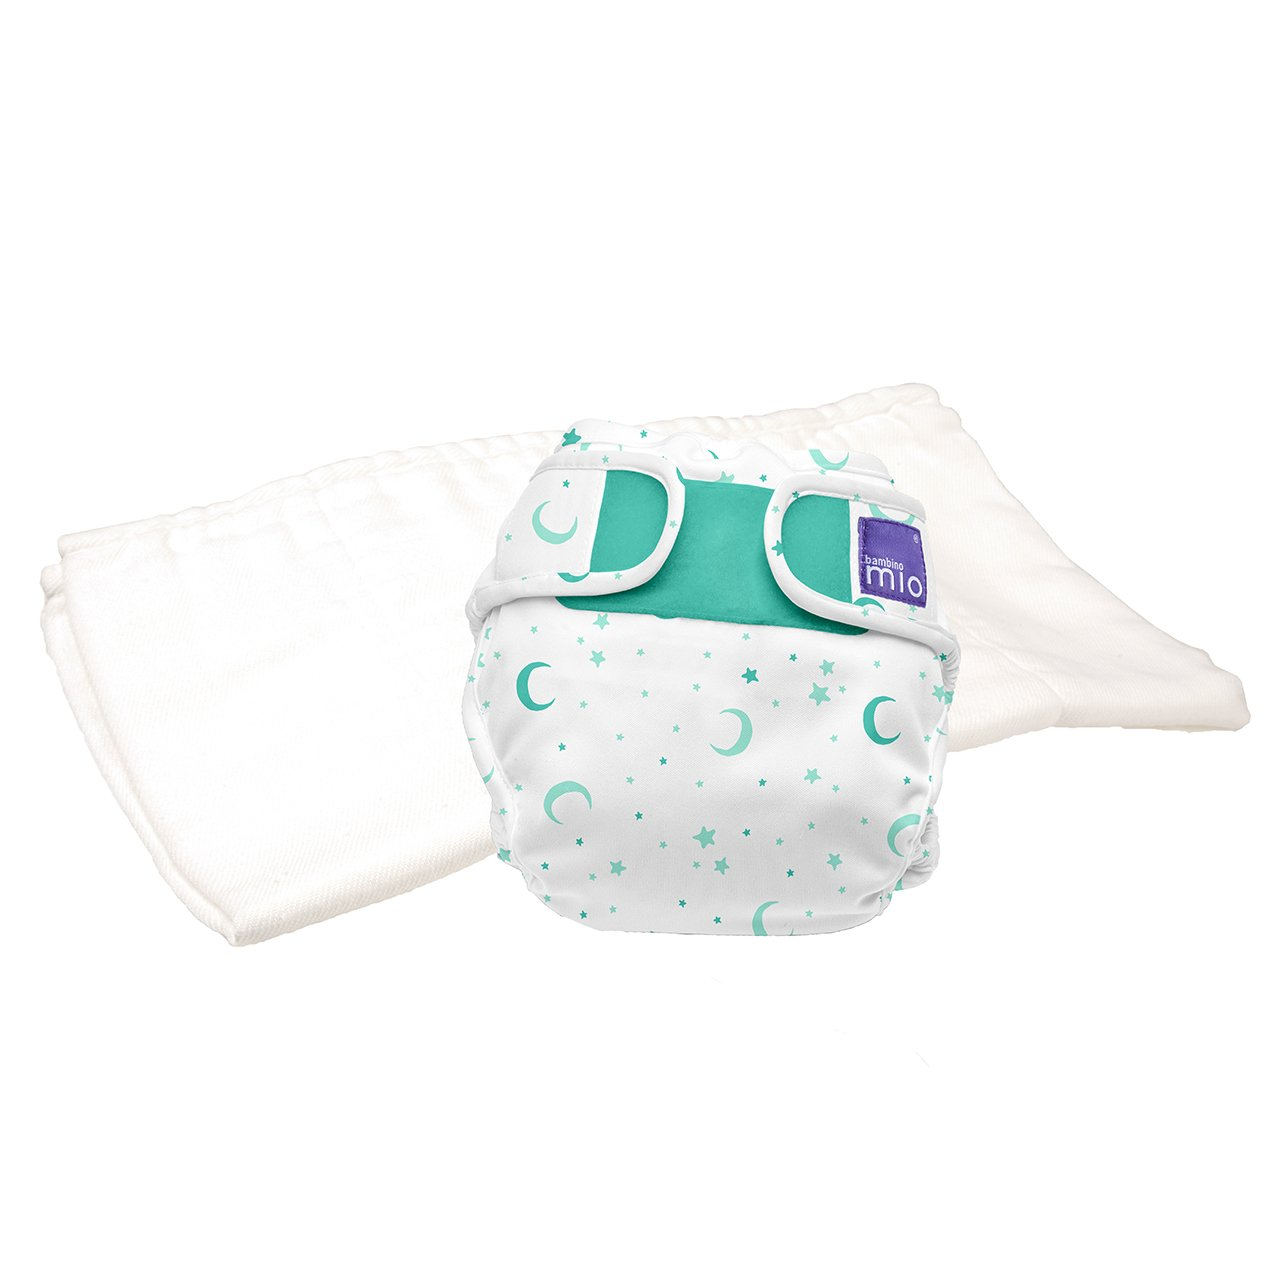 Size 1 Bambino Mio Miosoft Nappy Trial Pack Less Than 9 kg 2-Piece Spider Monkey